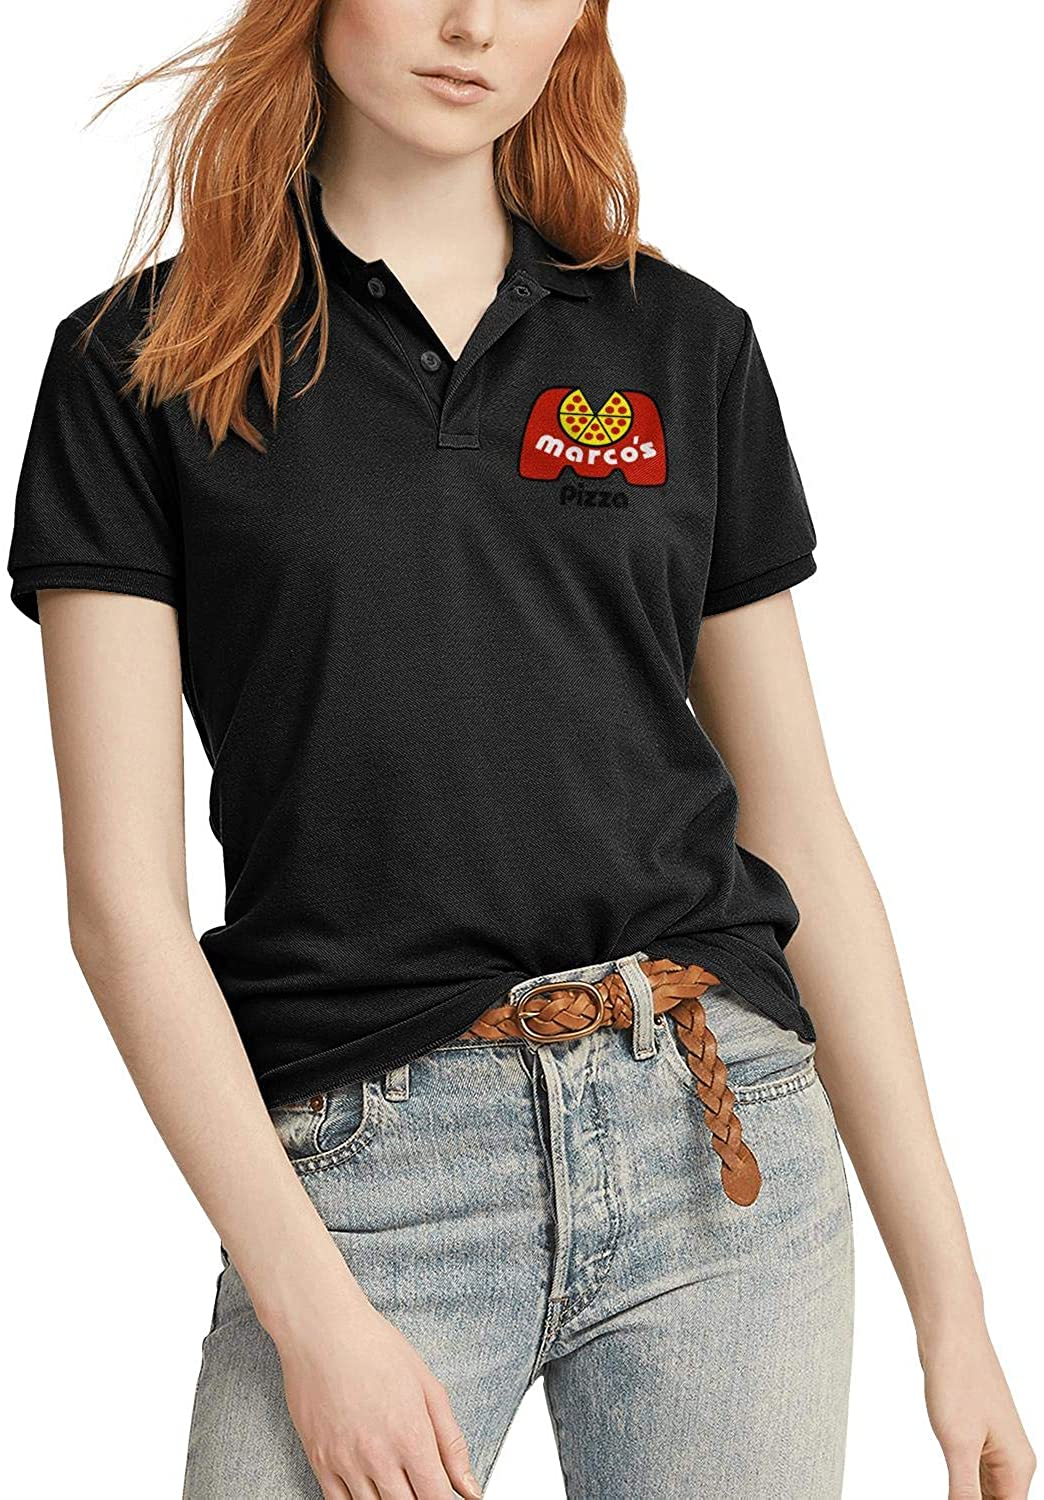 XIANGXIXI0 Black Woman Polo Shirt Fatburger_Logo.- Moisture Wicking 100% Cotton Fashion T Shirts